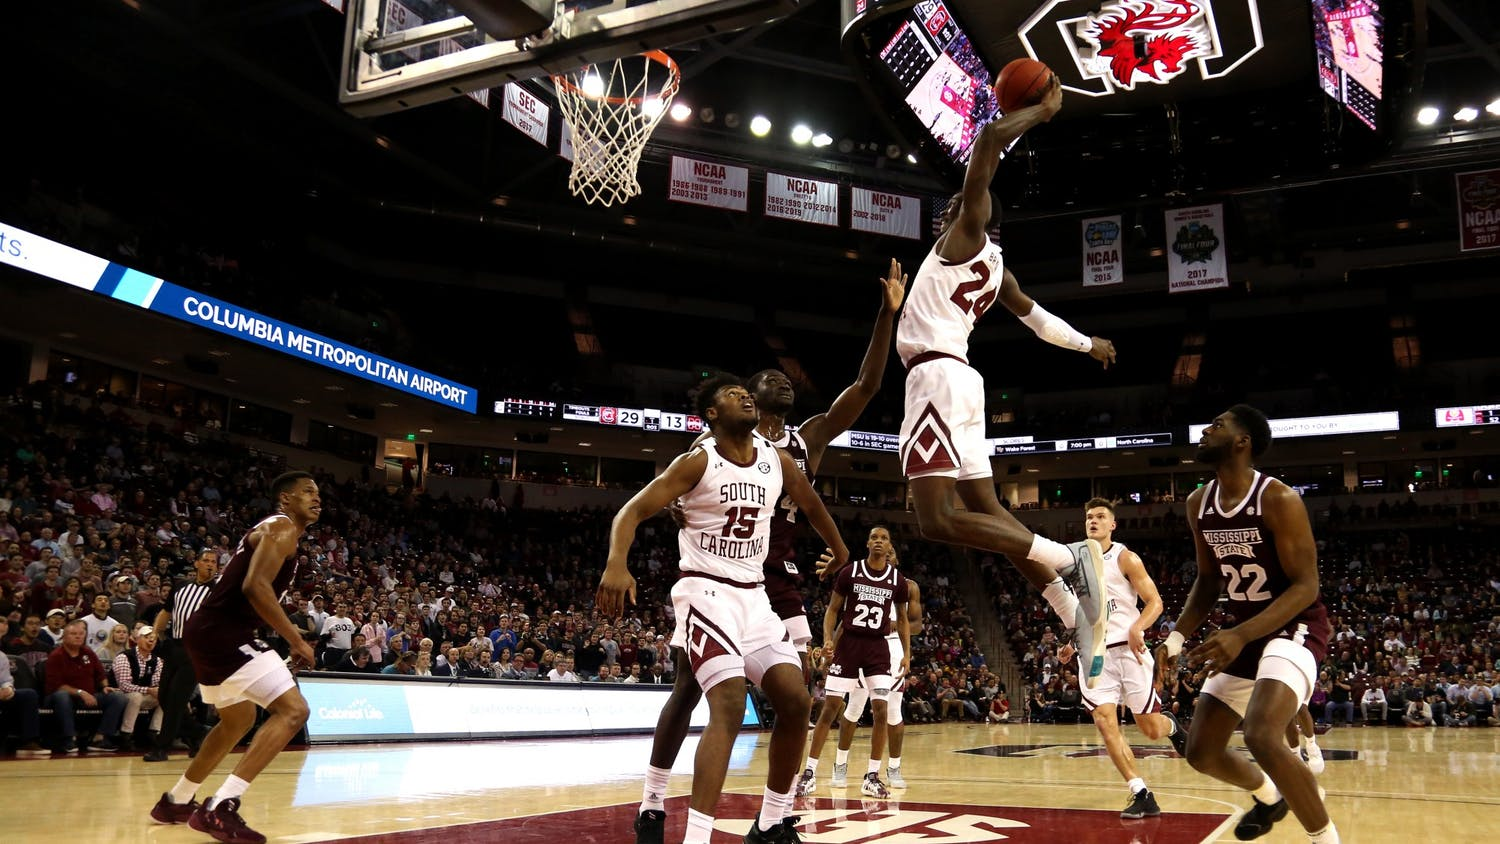 Sophomore forward Keyshawn Bryant dunks the ball during the game against Mississippi State on March 3, 2020.